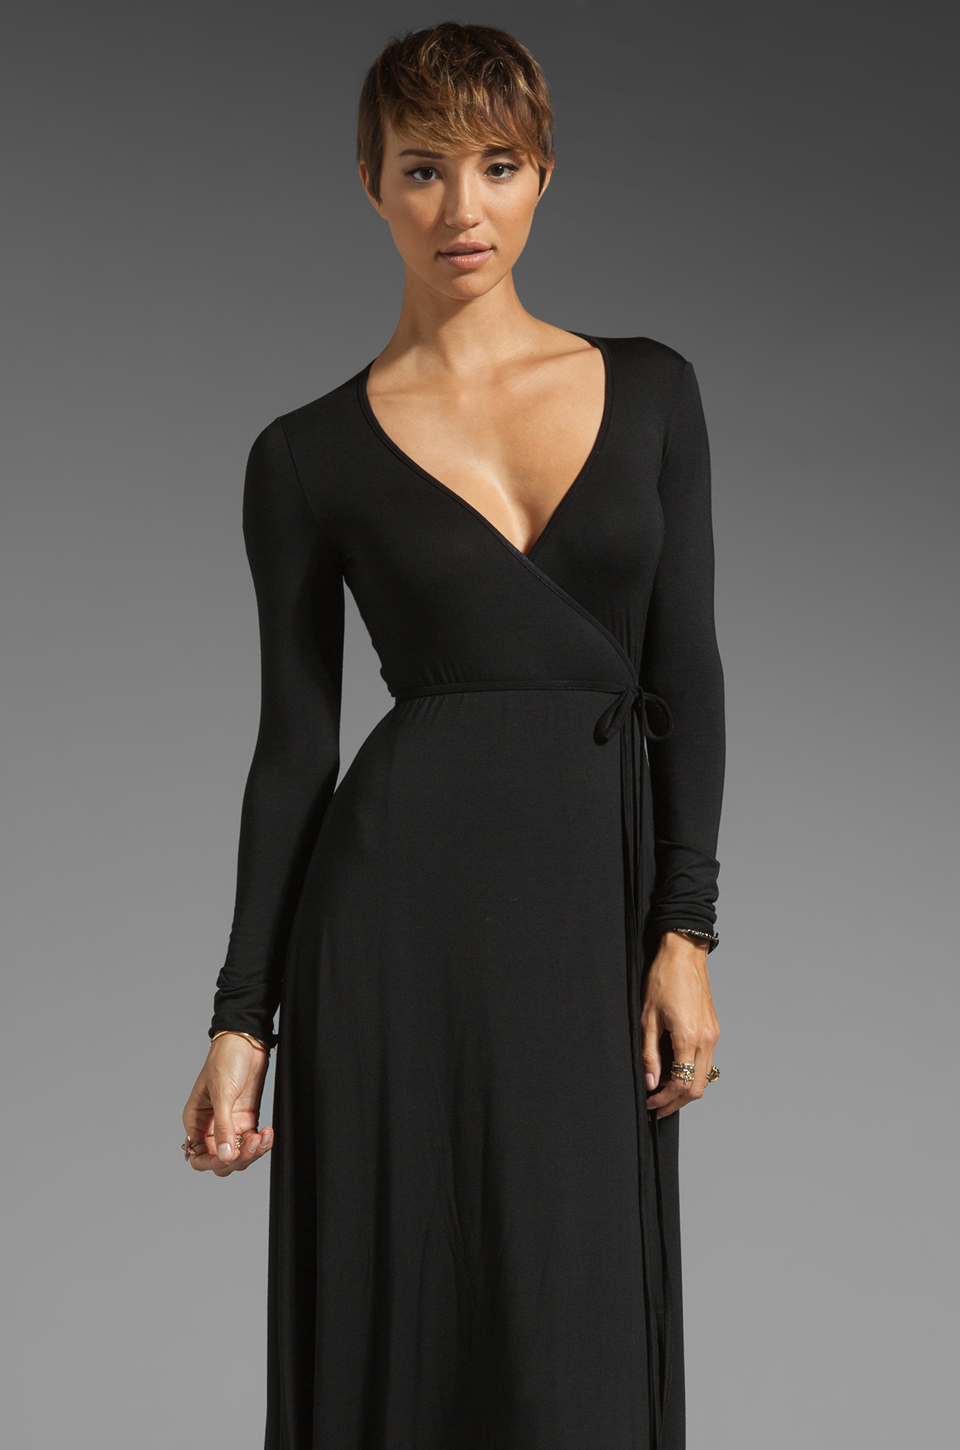 Rachel Pally Black Dress